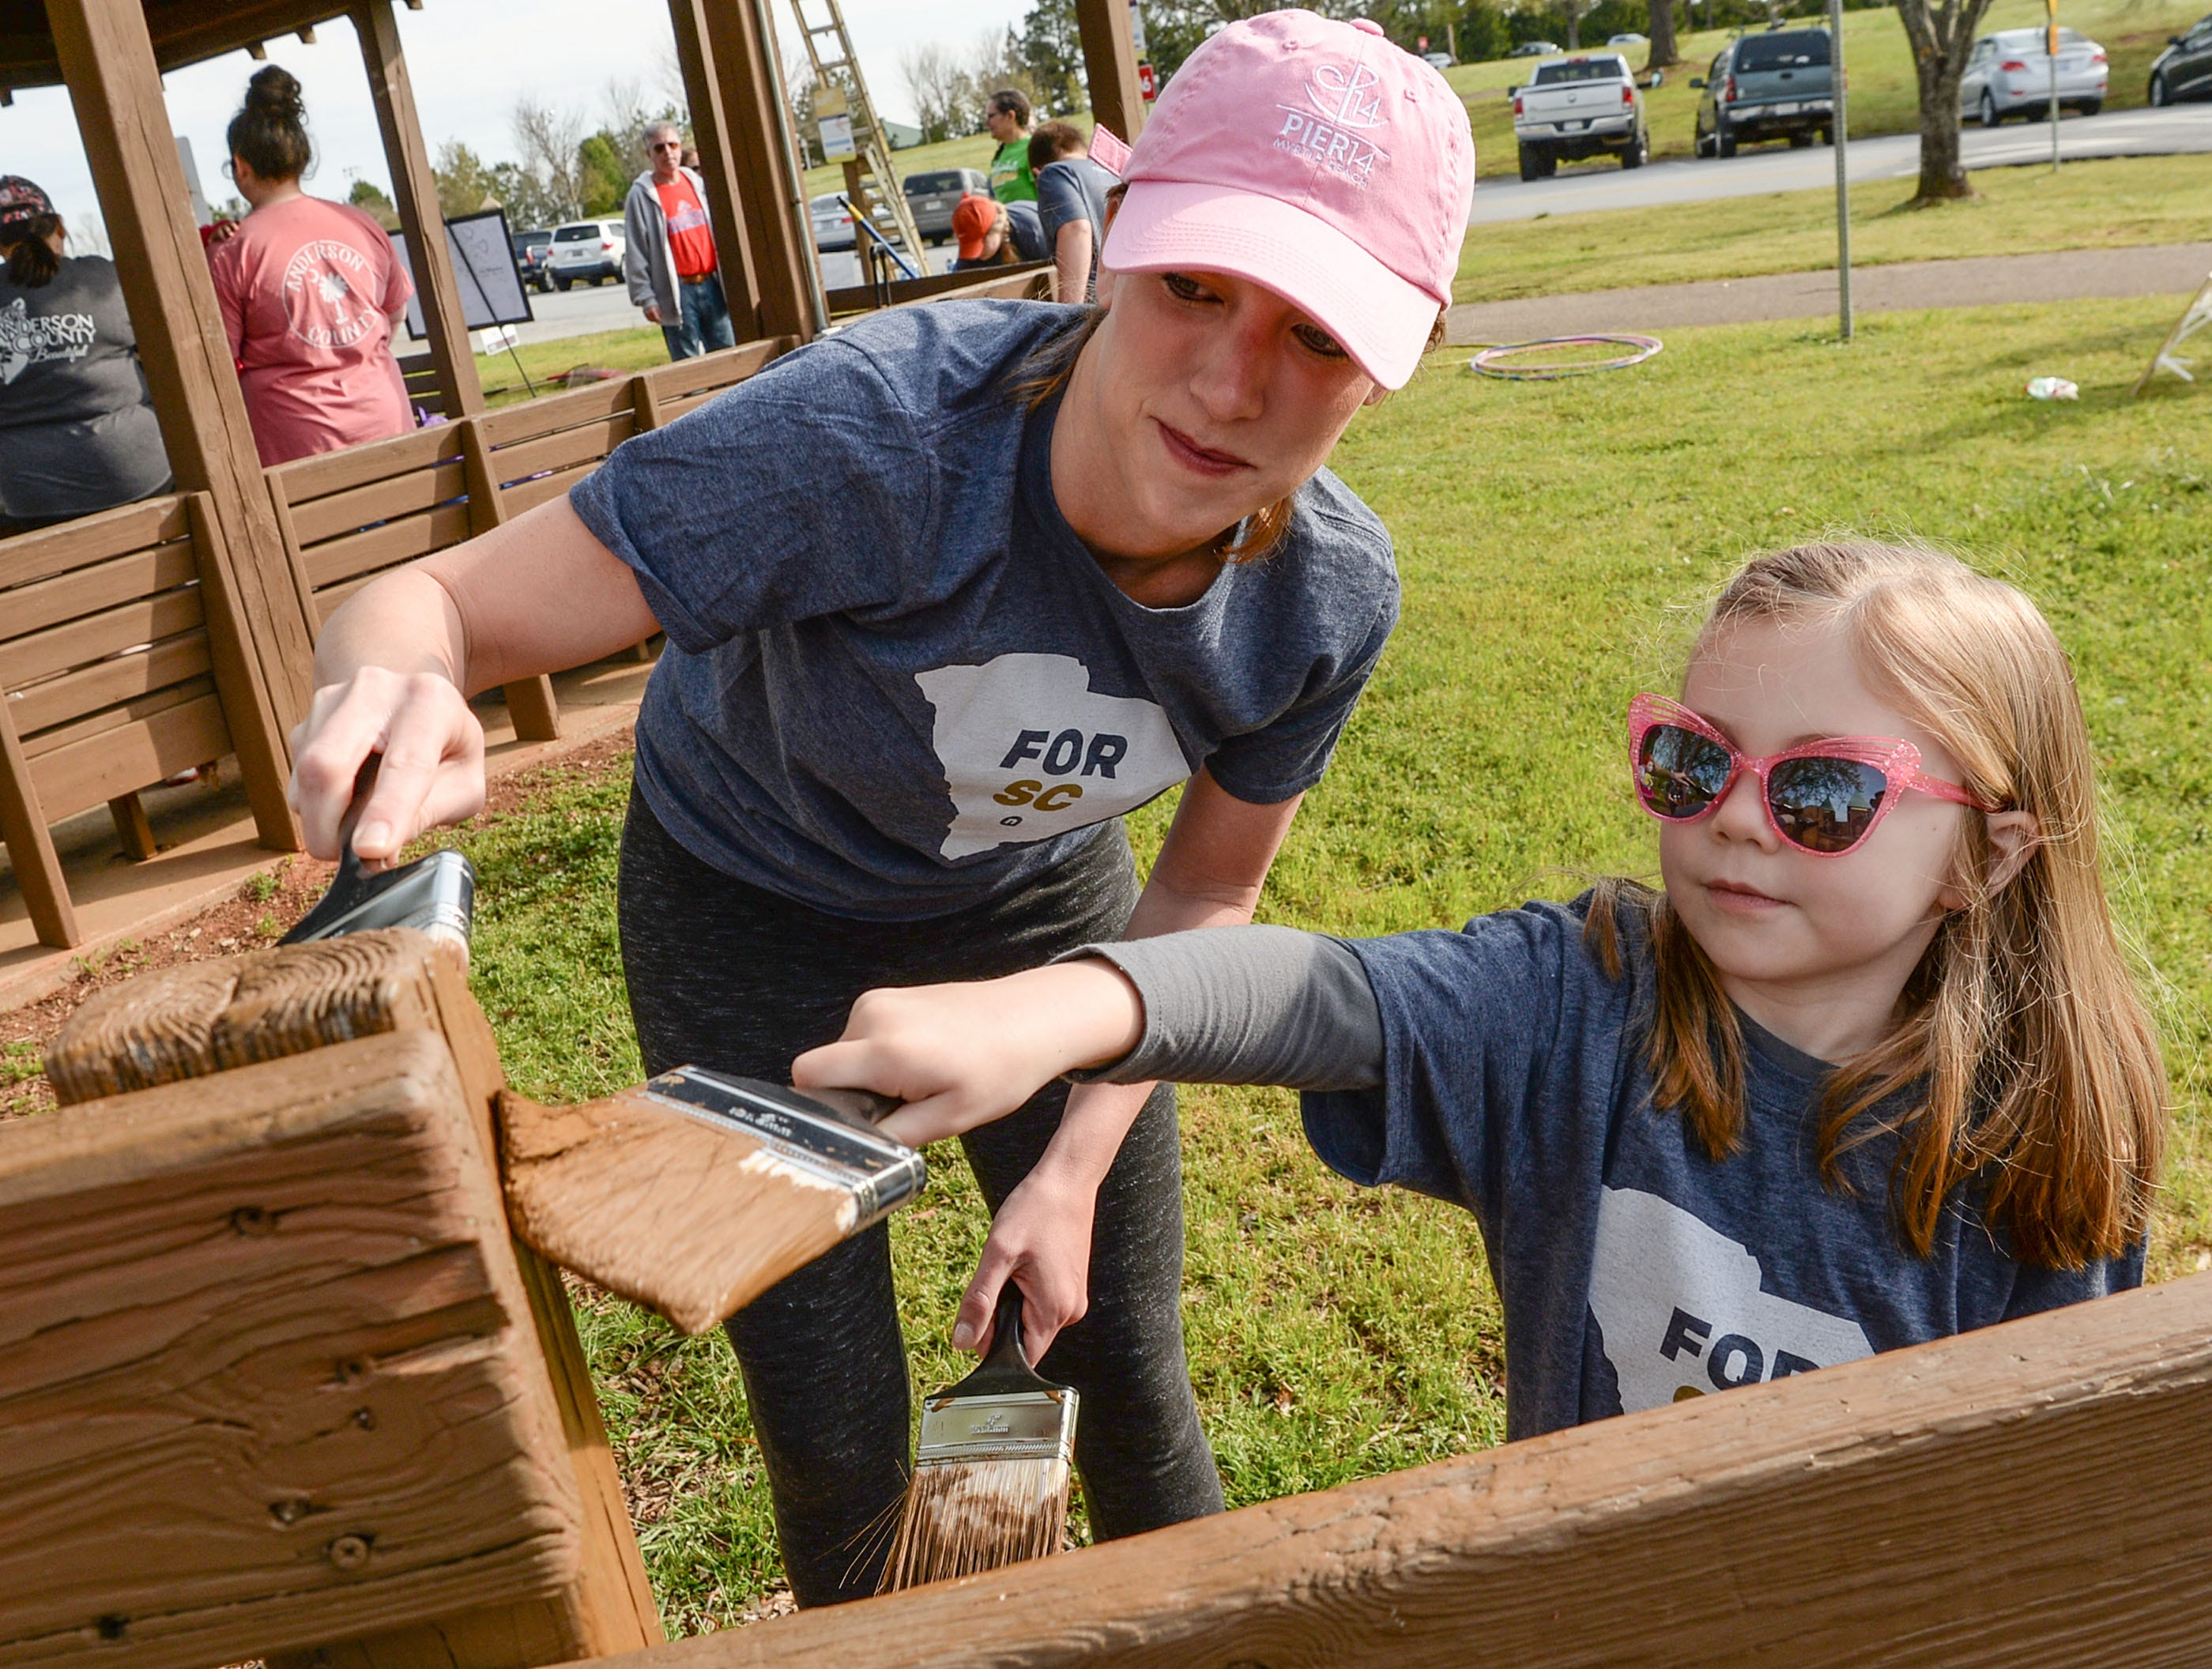 Katie Laughridge, left, and her daughter Cora, 4, stain a fence during KidVenture cleanup day at the Anderson Sports and Entertainment Complex Saturday. A group of 310 volunteers, 250 from NewSpring Church, helped spread 100 cubic yards (70,000 pounds) of mulch, and brush 30 gallons of stain on the fences, pick up trash, and trim trees and shrubs at the park which opened 20 years ago in 1999.